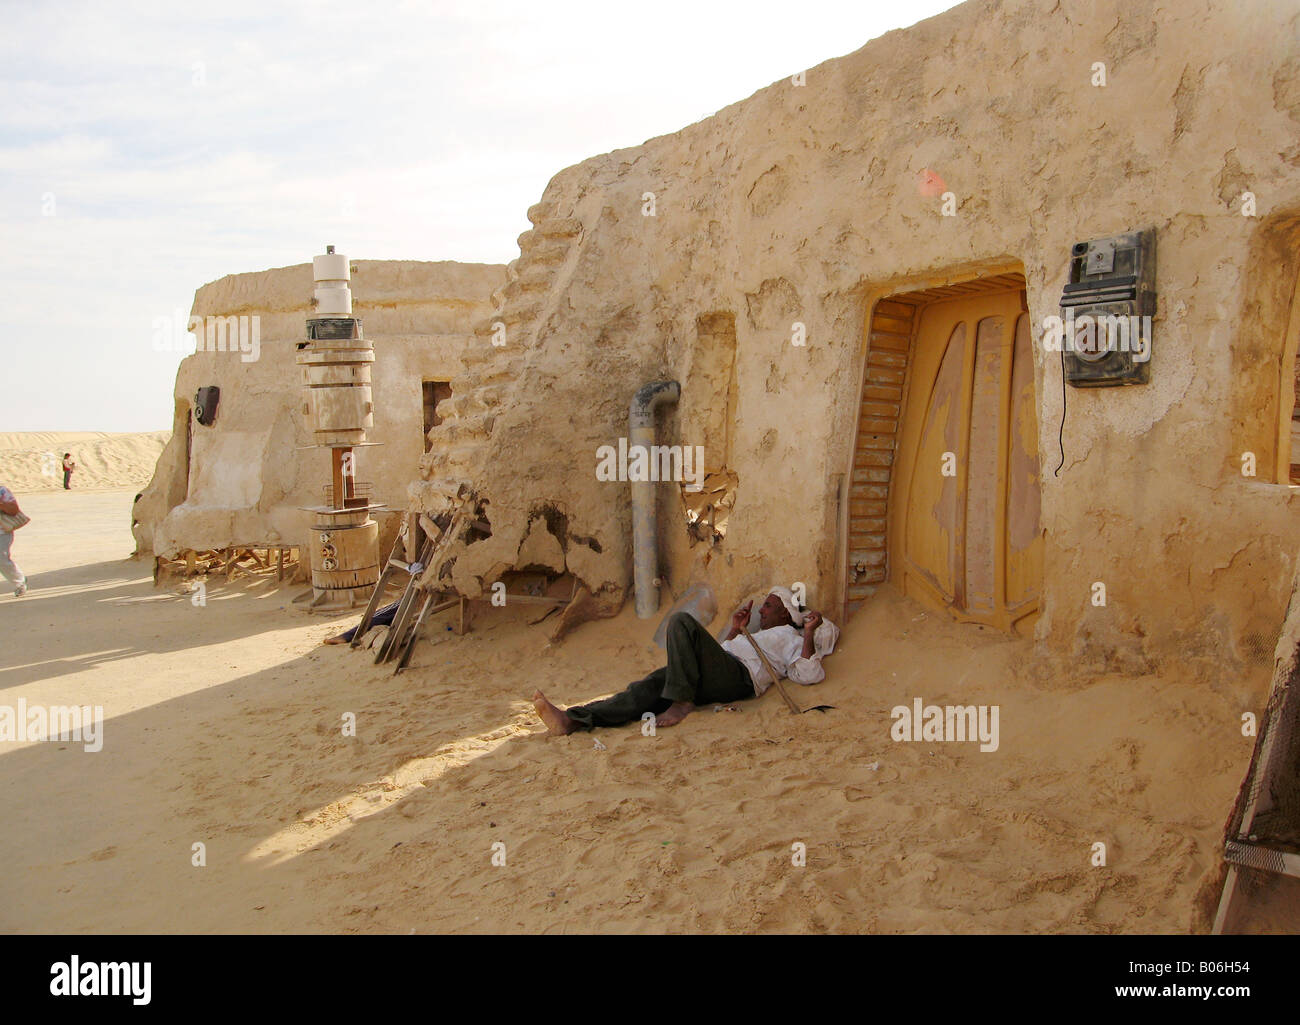 Tunisia Star Wars Movie Set In The Sahara Desert At Ong El Jemel Stock Photo Alamy